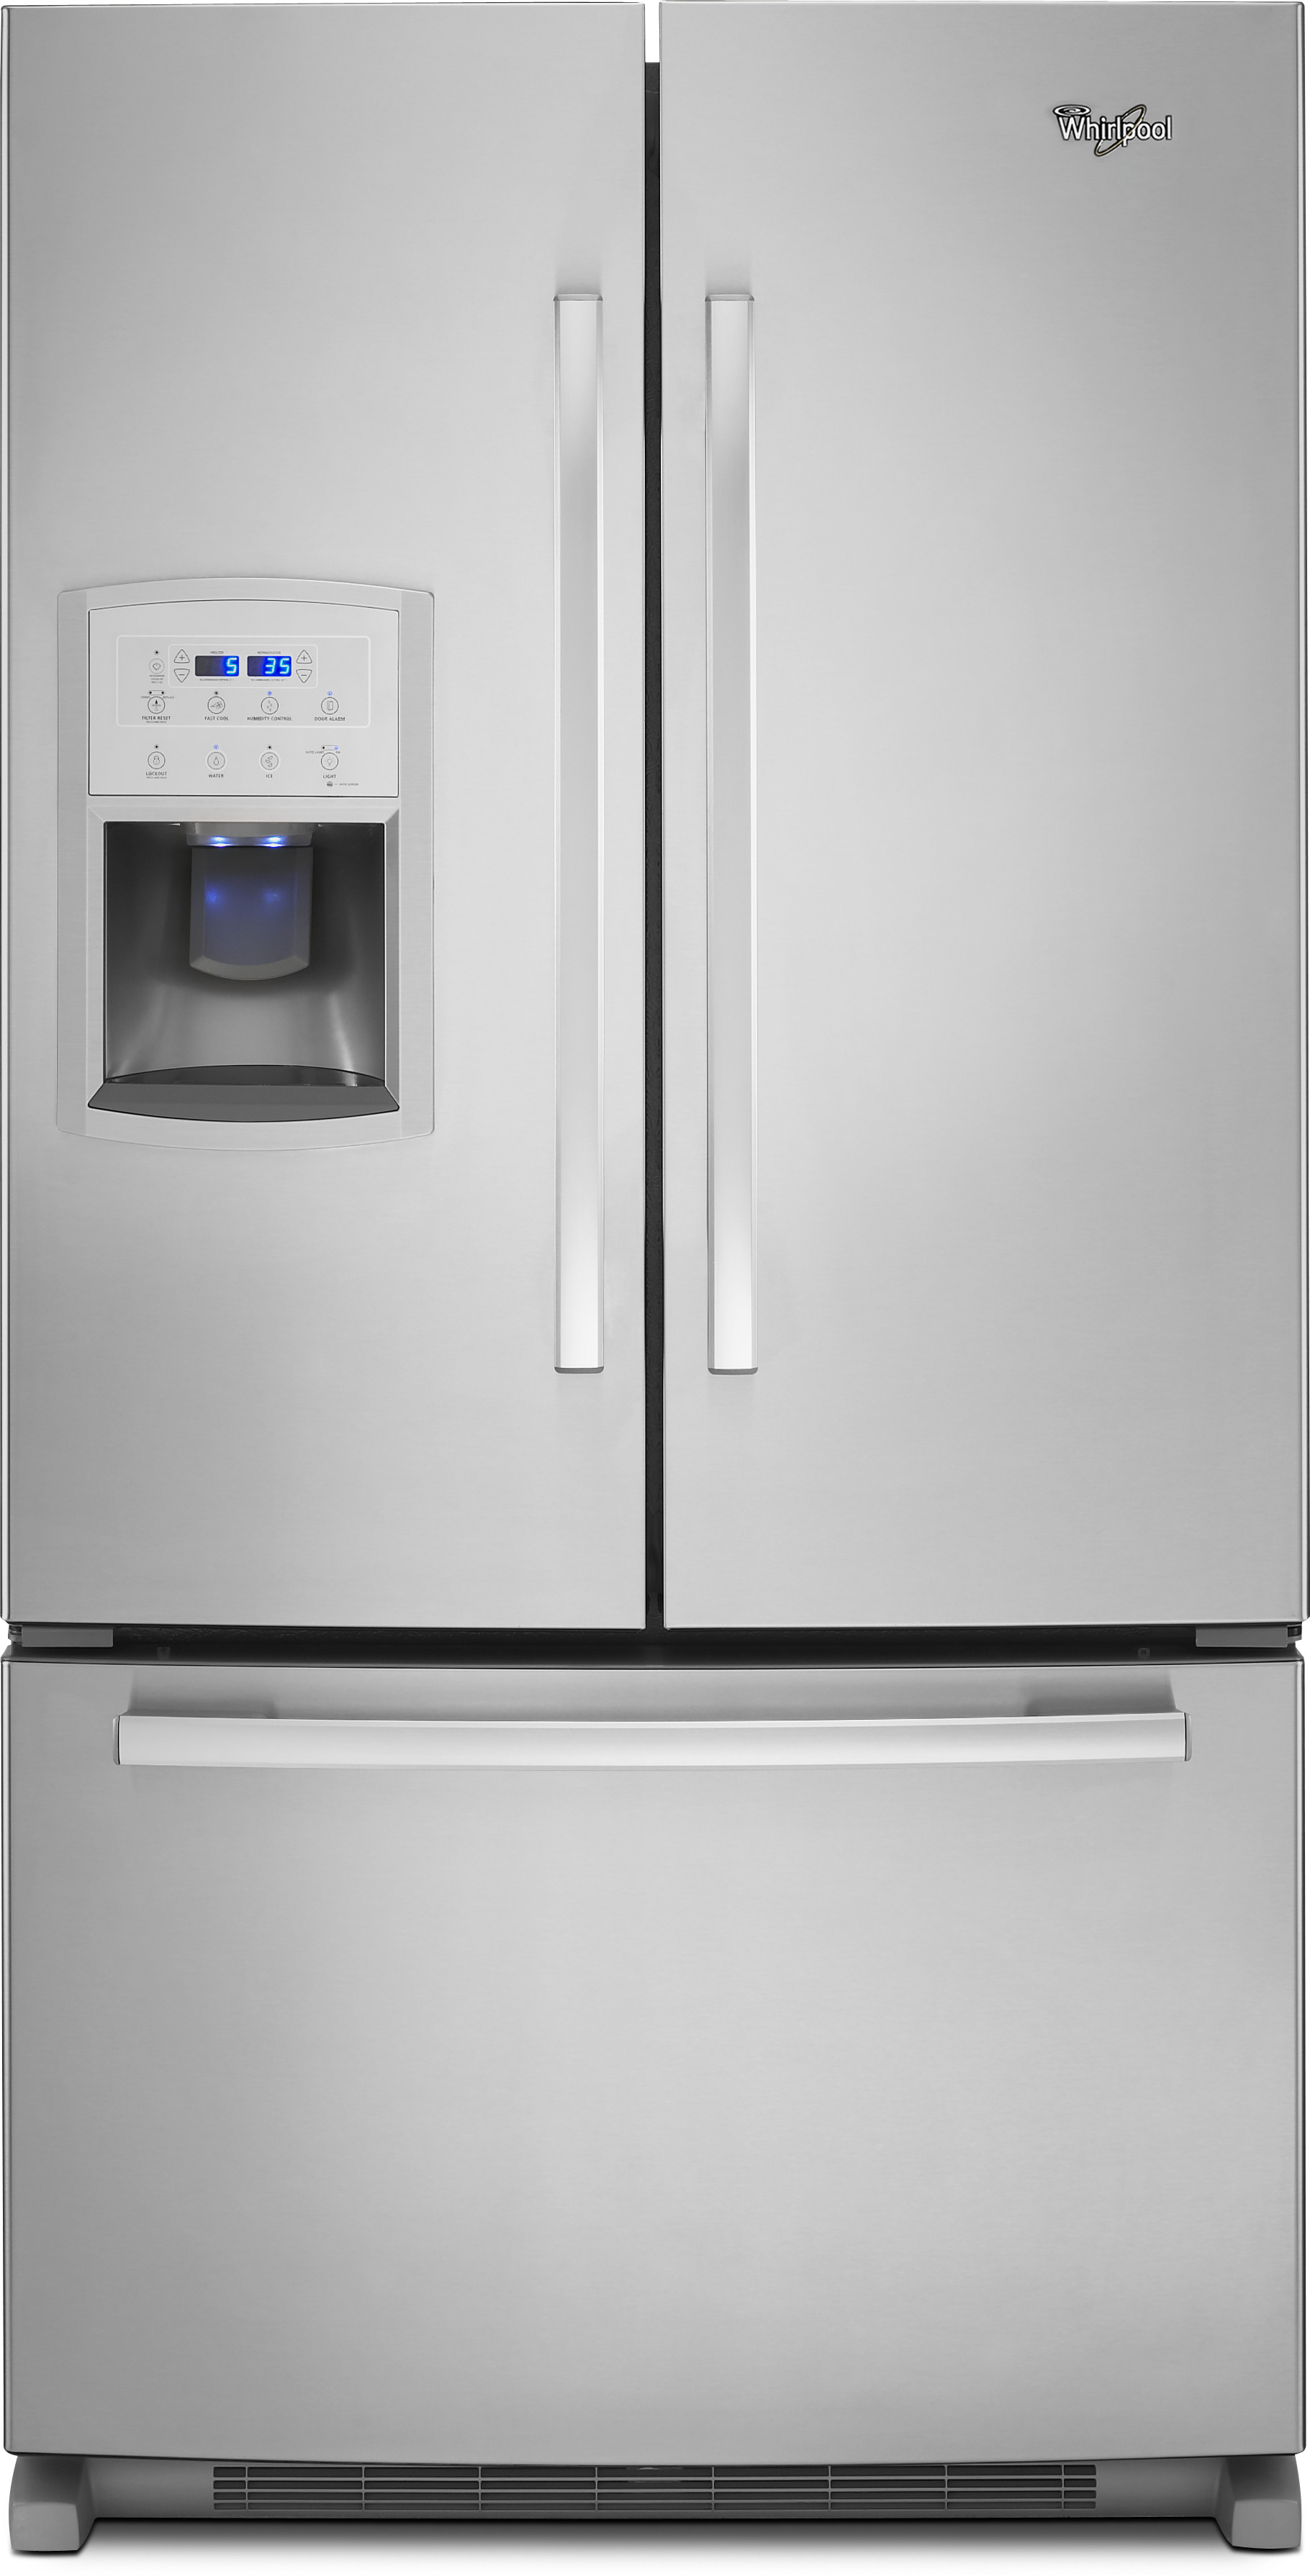 Whirlpool Counter Depth Refrigerators